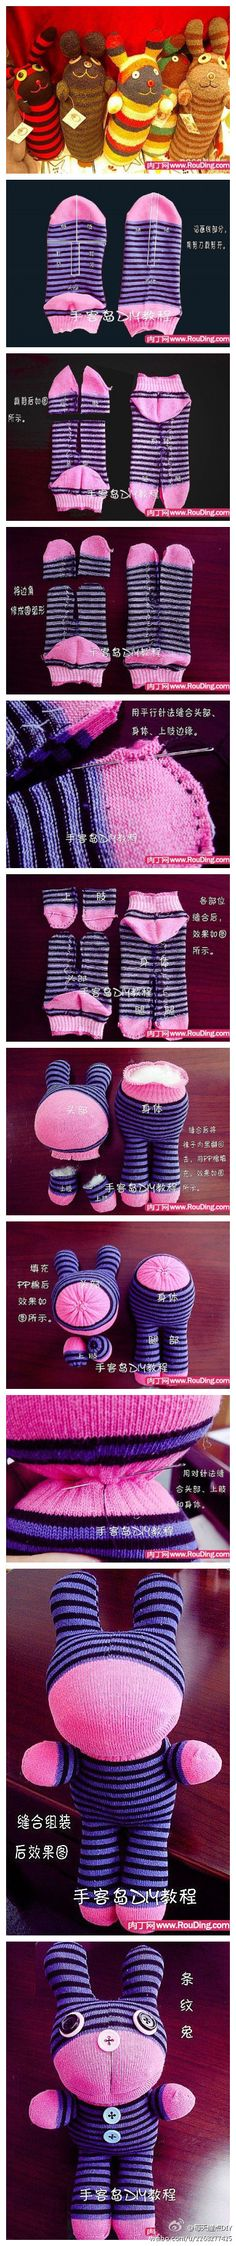 Sock plush toys. Warning this one is in Japanese, so you just have to follow the tutorial pictures.